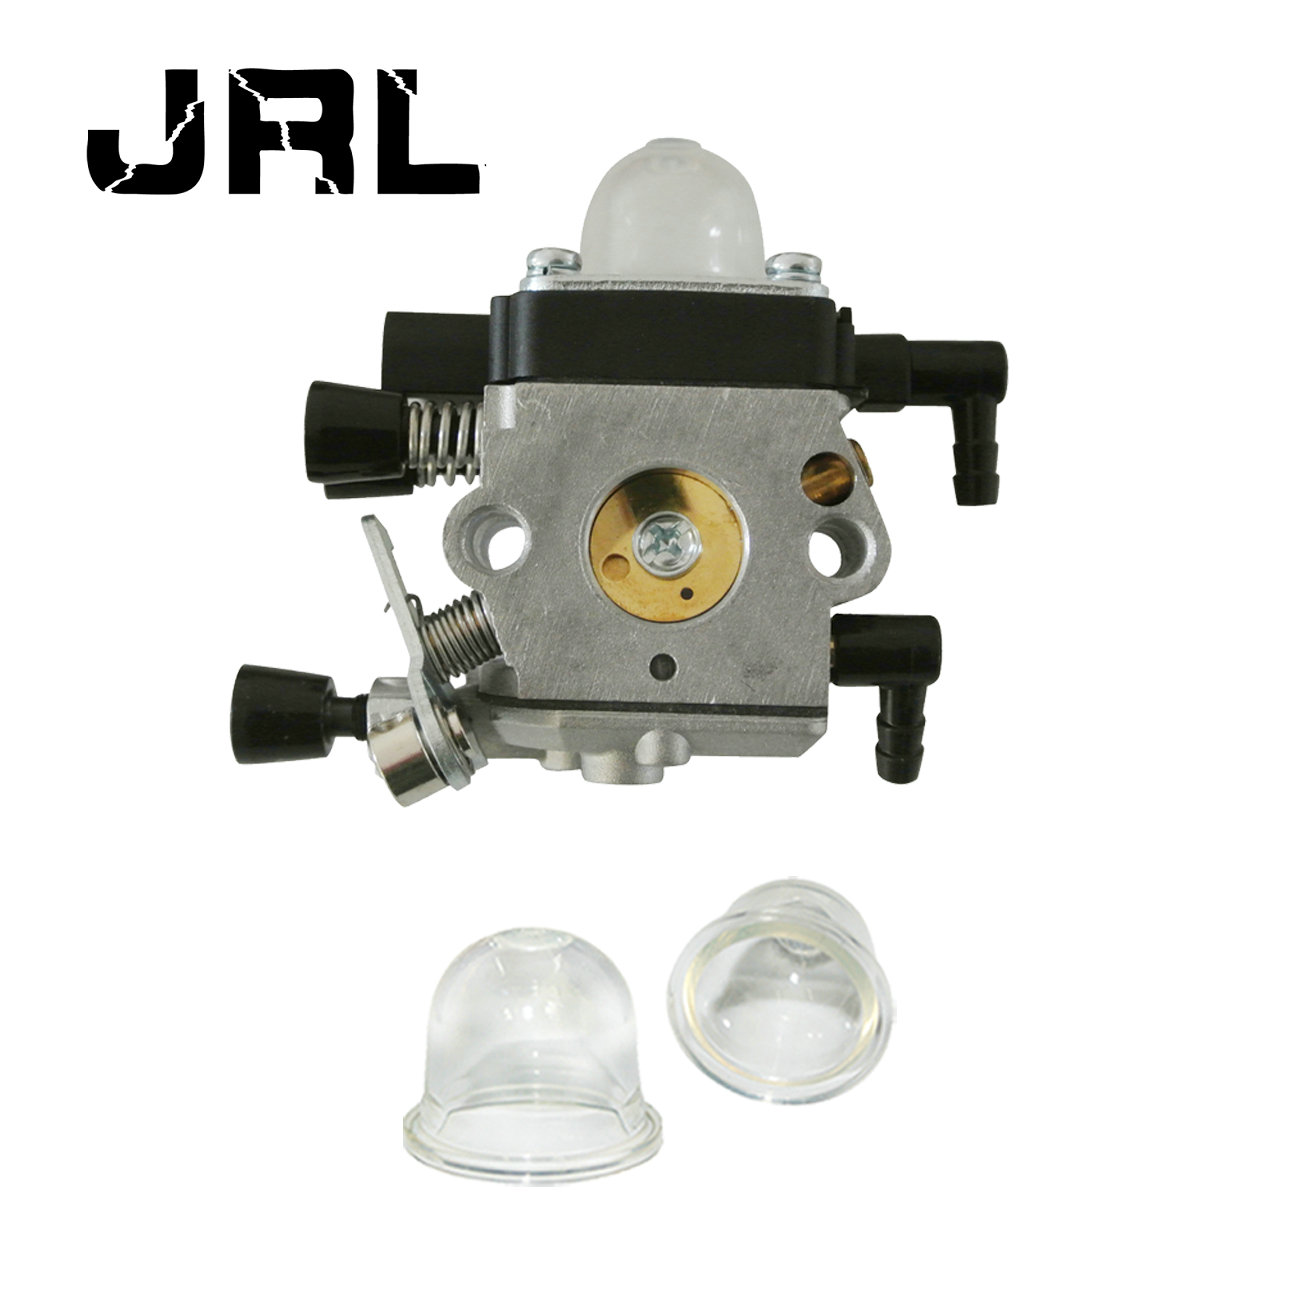 Carburetor & 2 Primer Bulbs Fit Stihl MM55 MM55C Tiller Trimmer Zama C1Q-S202A